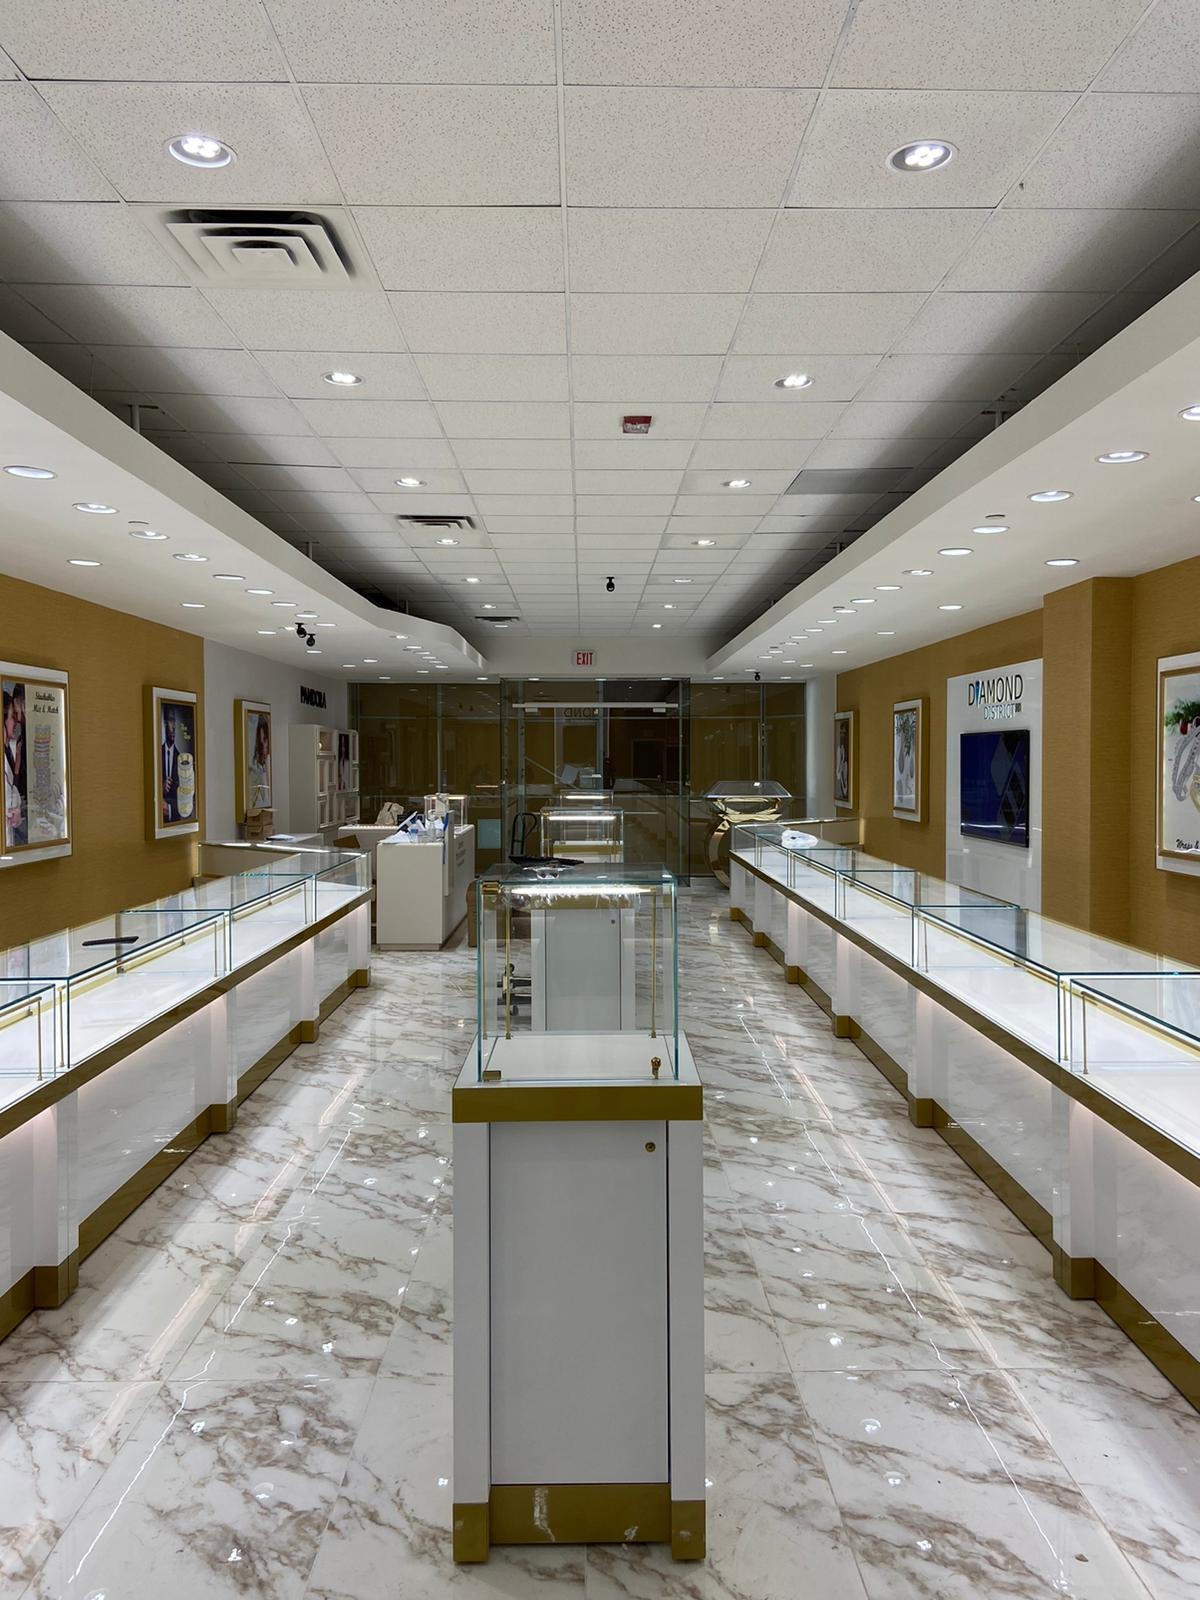 Diamond District 901 completed one of the three stores for 2020 with the fully custom LED Diamond lights in the ceiling and extra clear showcases to sparkle the inventory. Diamond Lighting and showcases by Lighting4Diamonds.